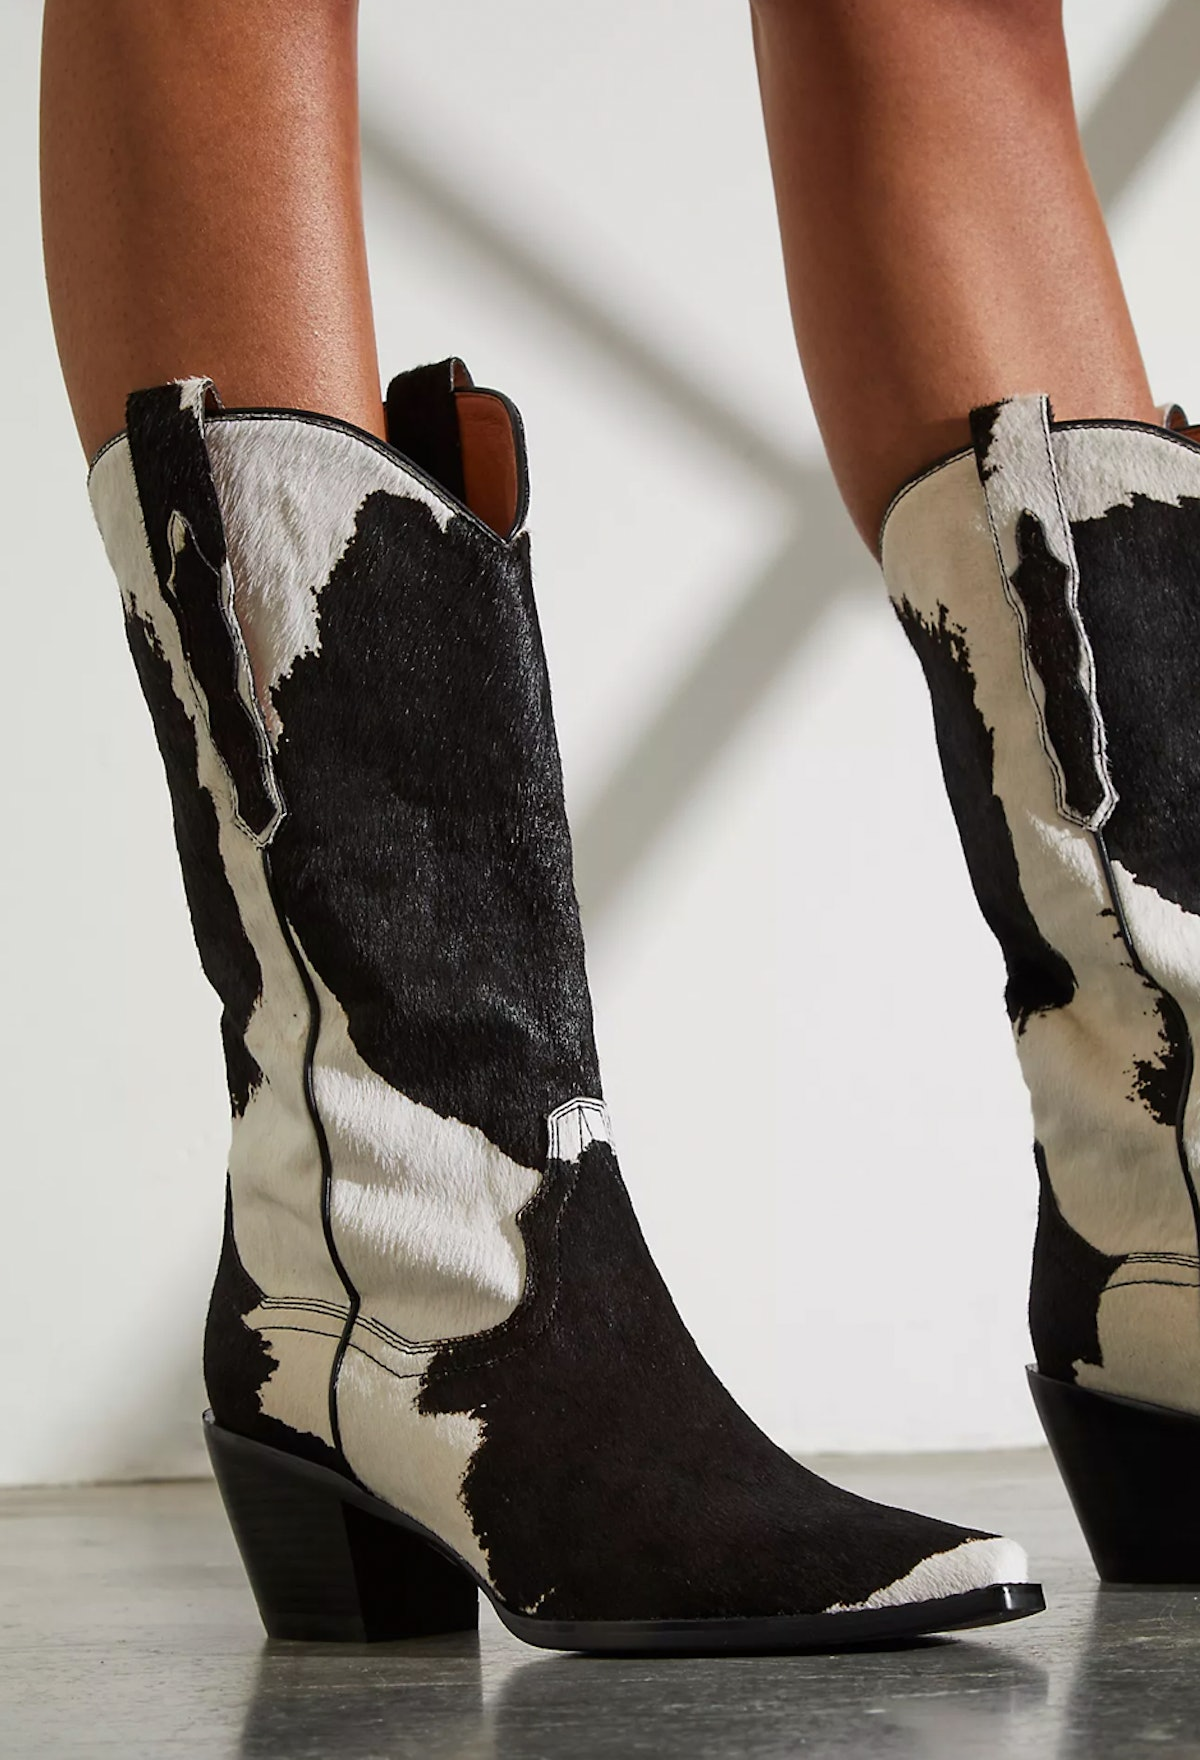 dagget printed western boot